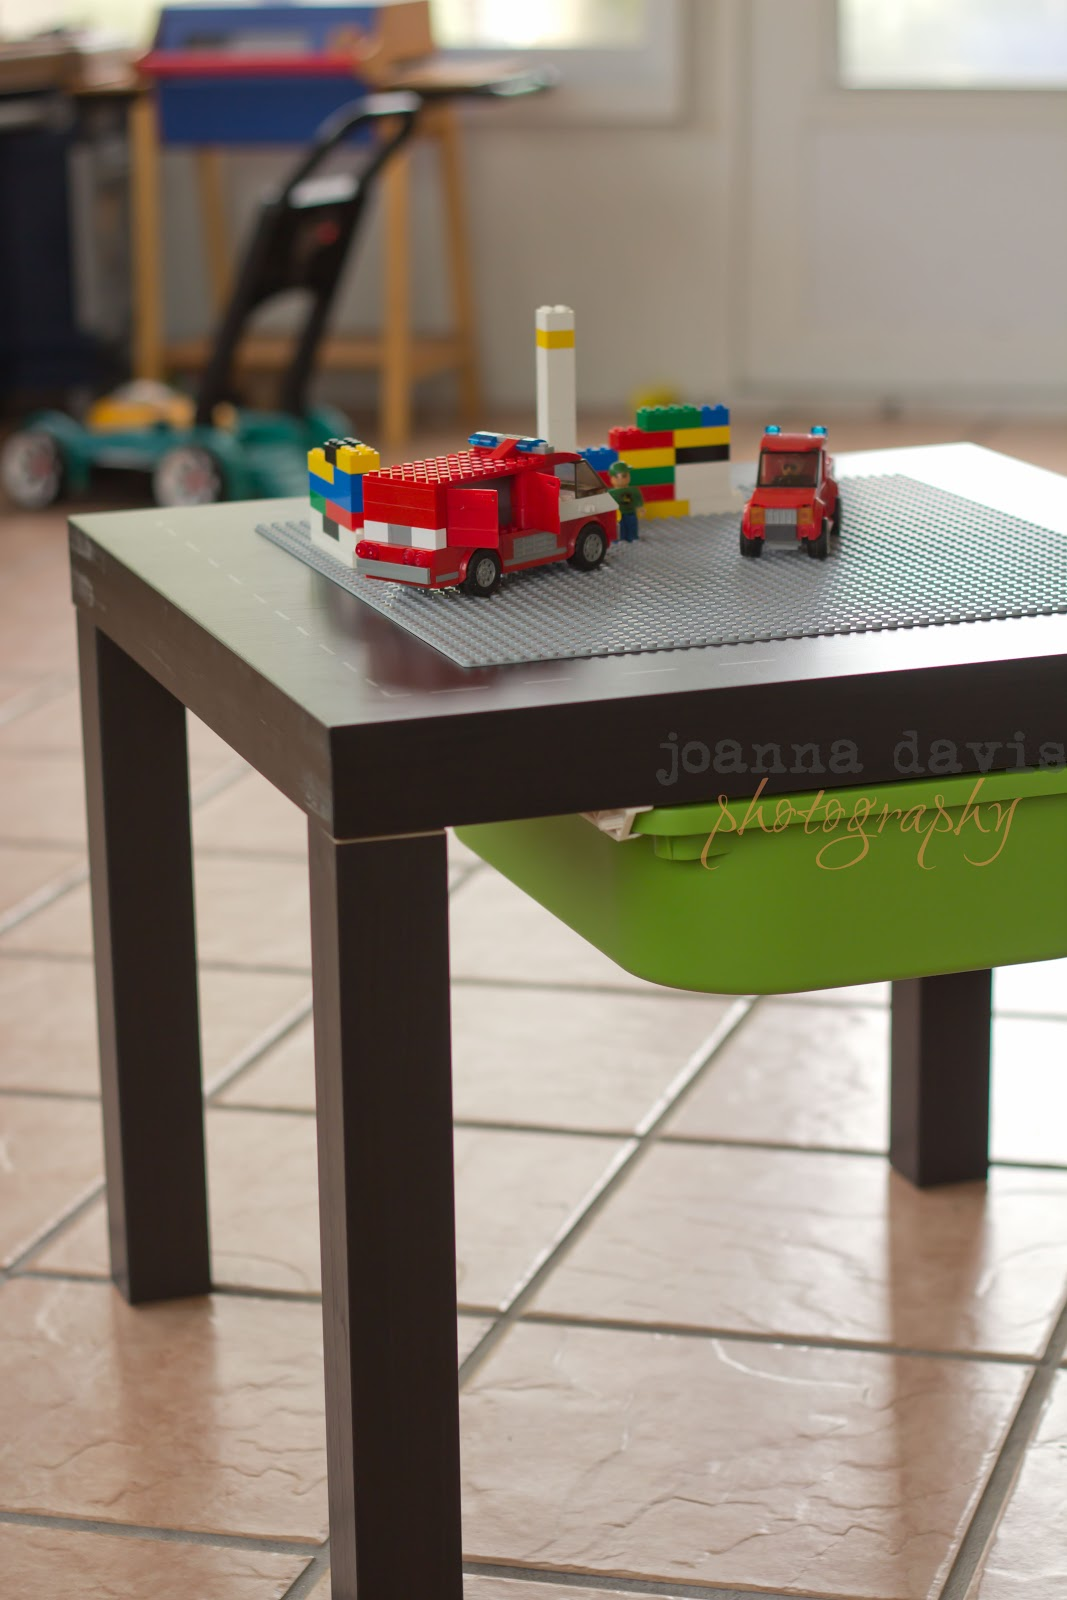 10 new ways to use your ikea lack side table diy furniture for Ikea lack lego table